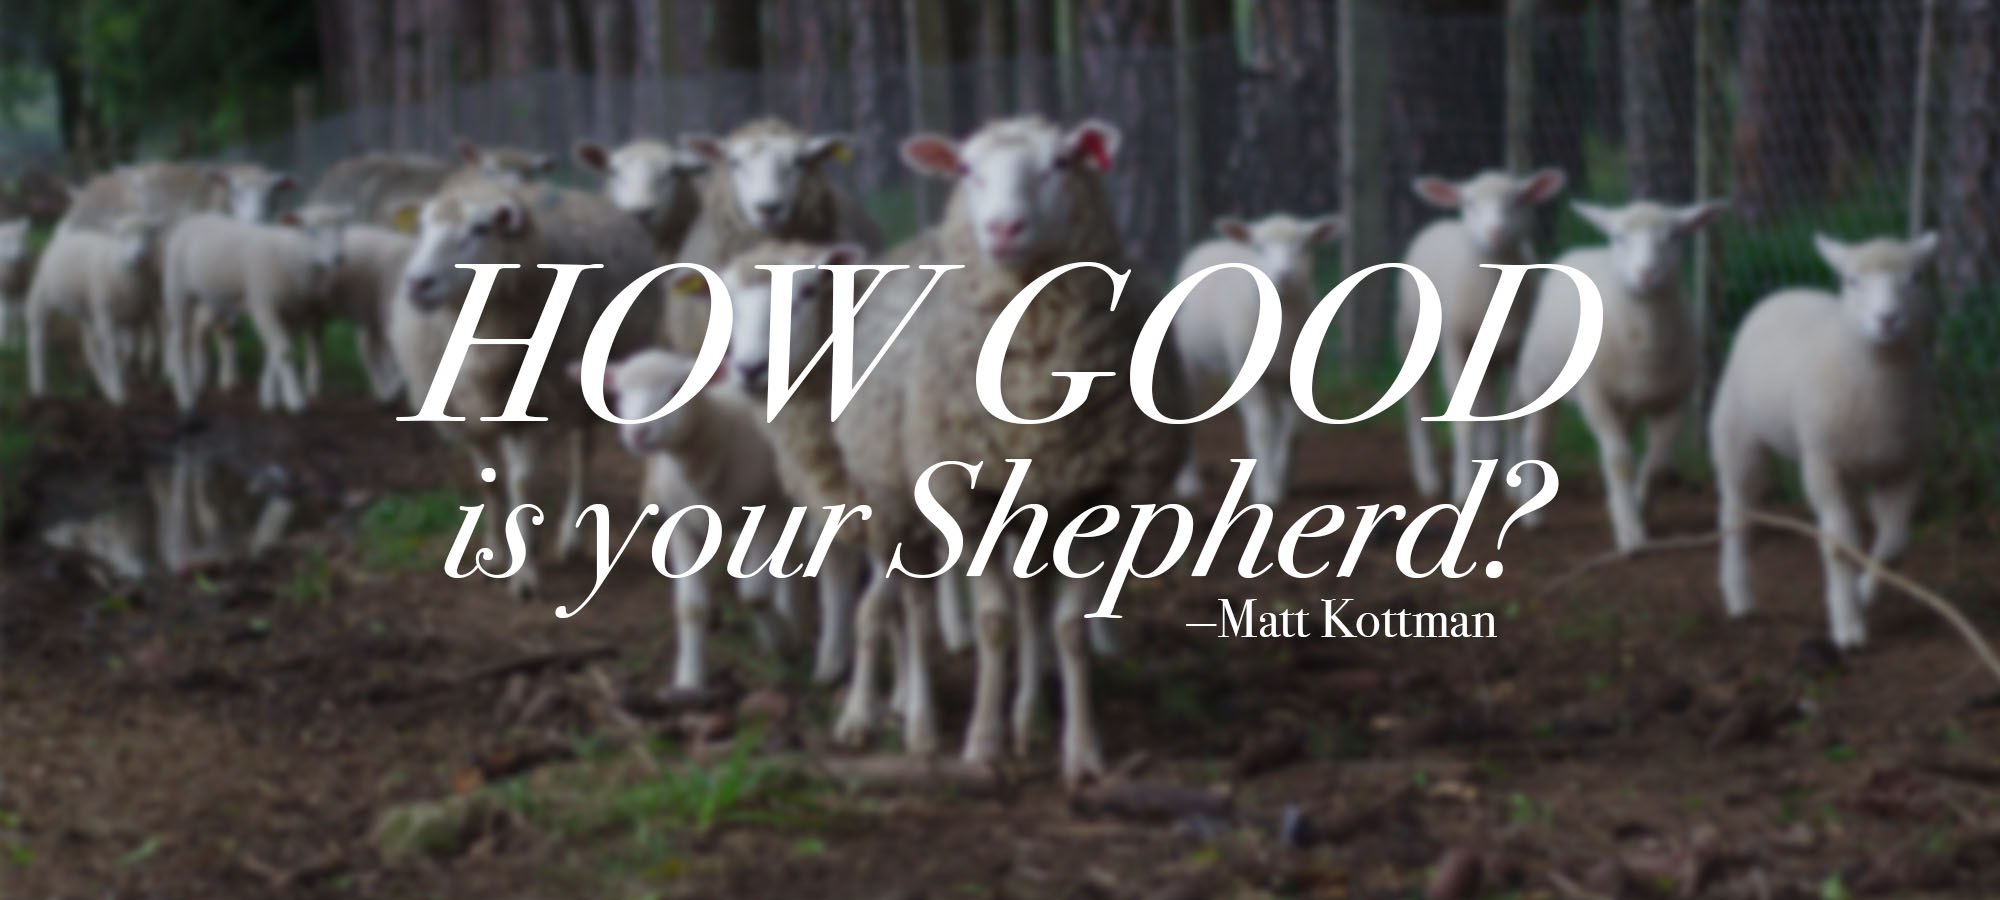 How Good is Your Shepherd?